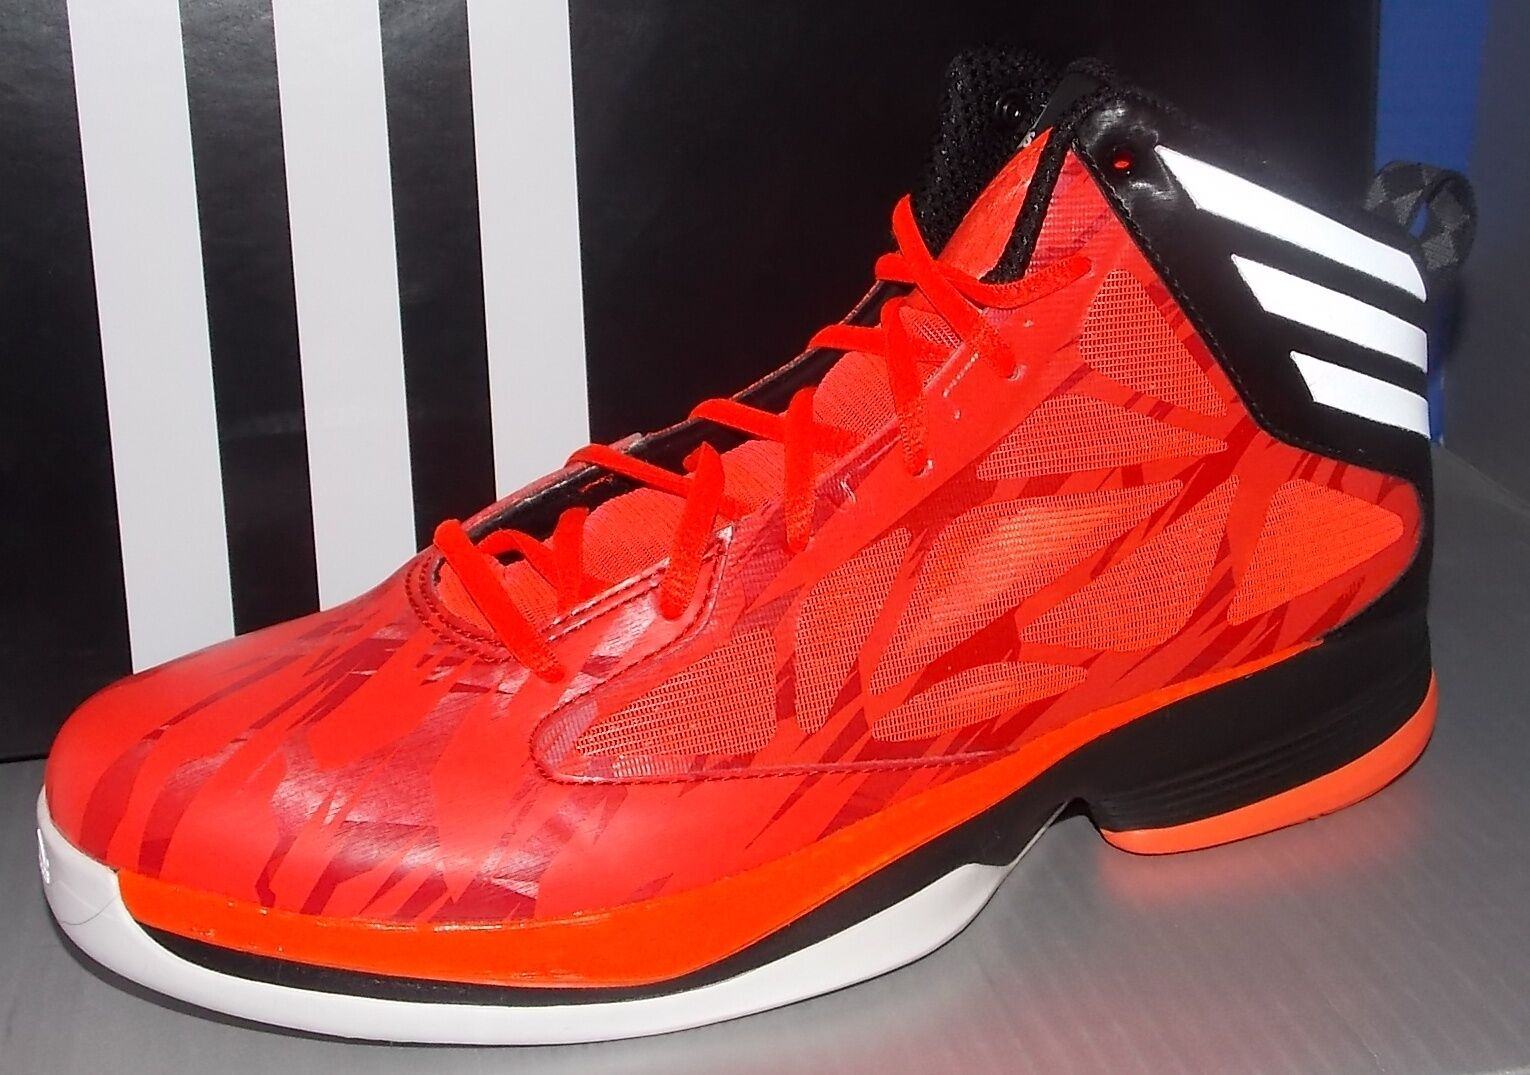 MENS ADIDAS CRAZY FAST in colors INFRA RED   RUNNING WHITE   BLACK SIZE 11.5